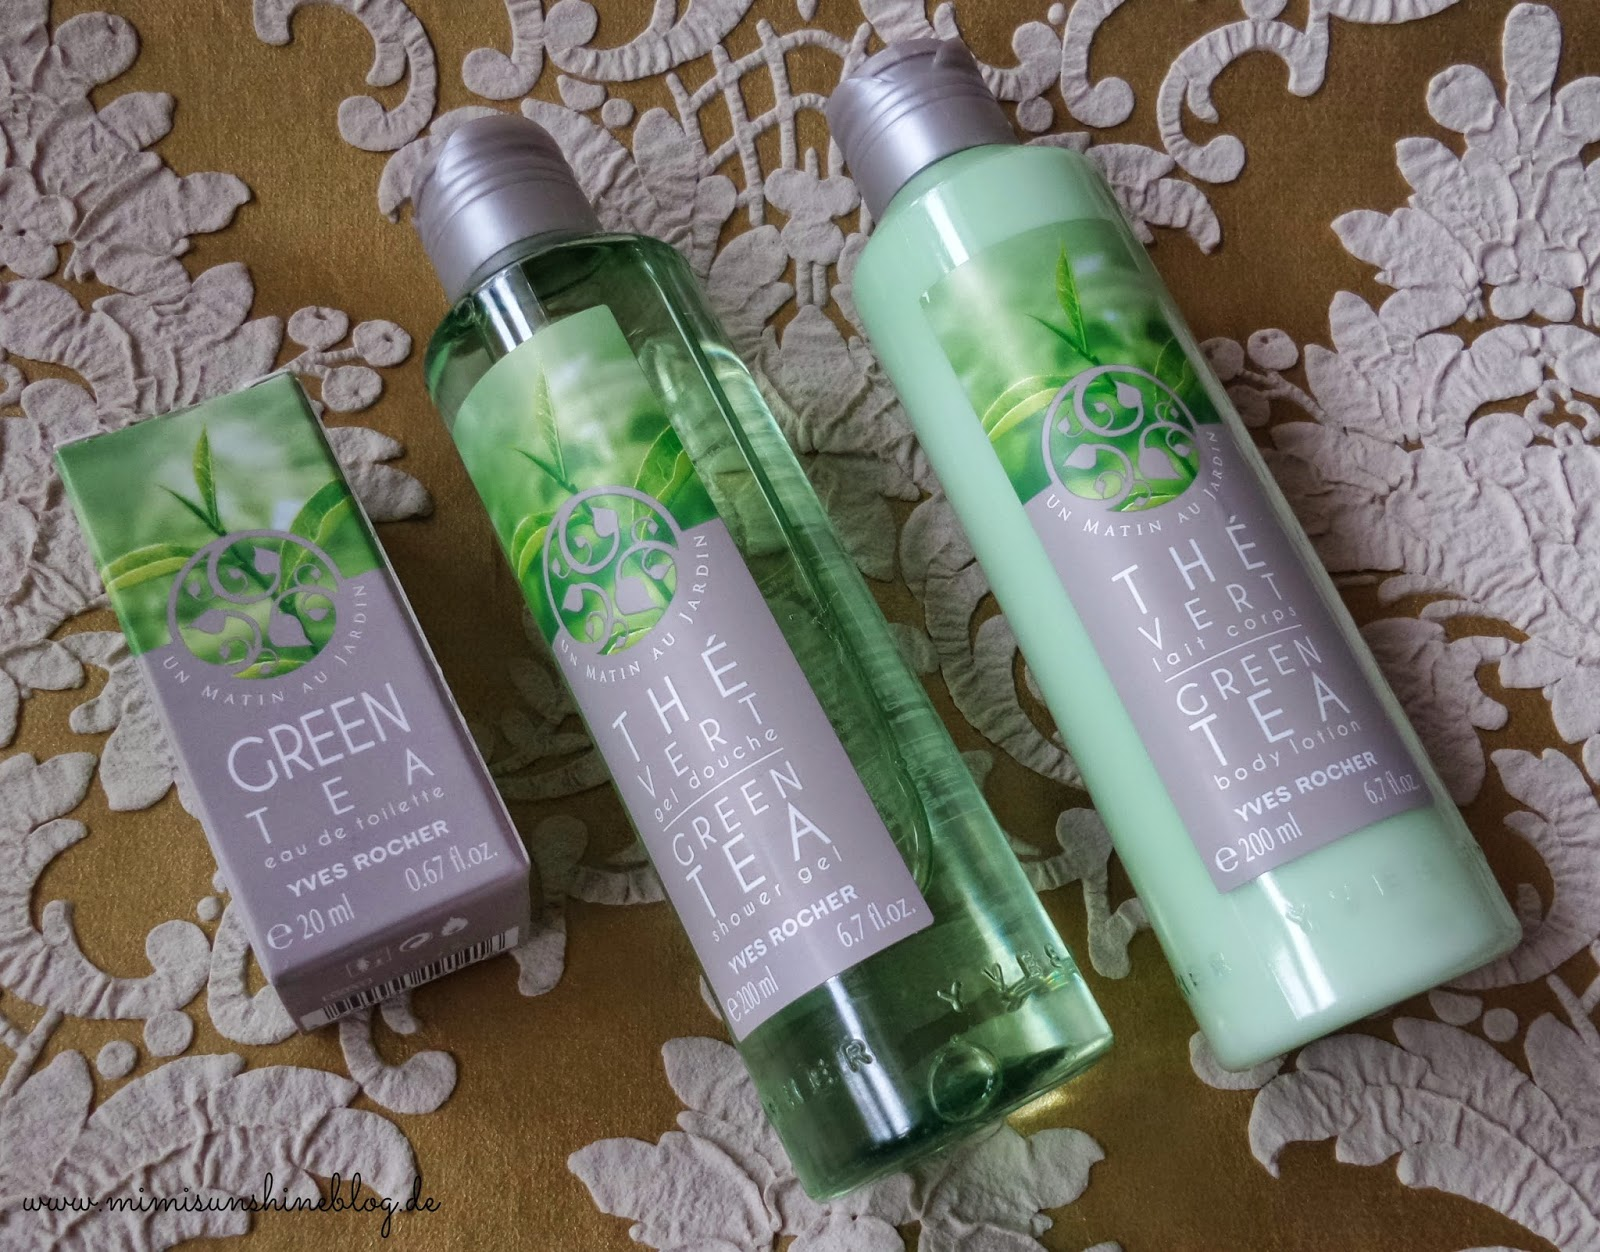 Yves Rocher Green Tea Serie